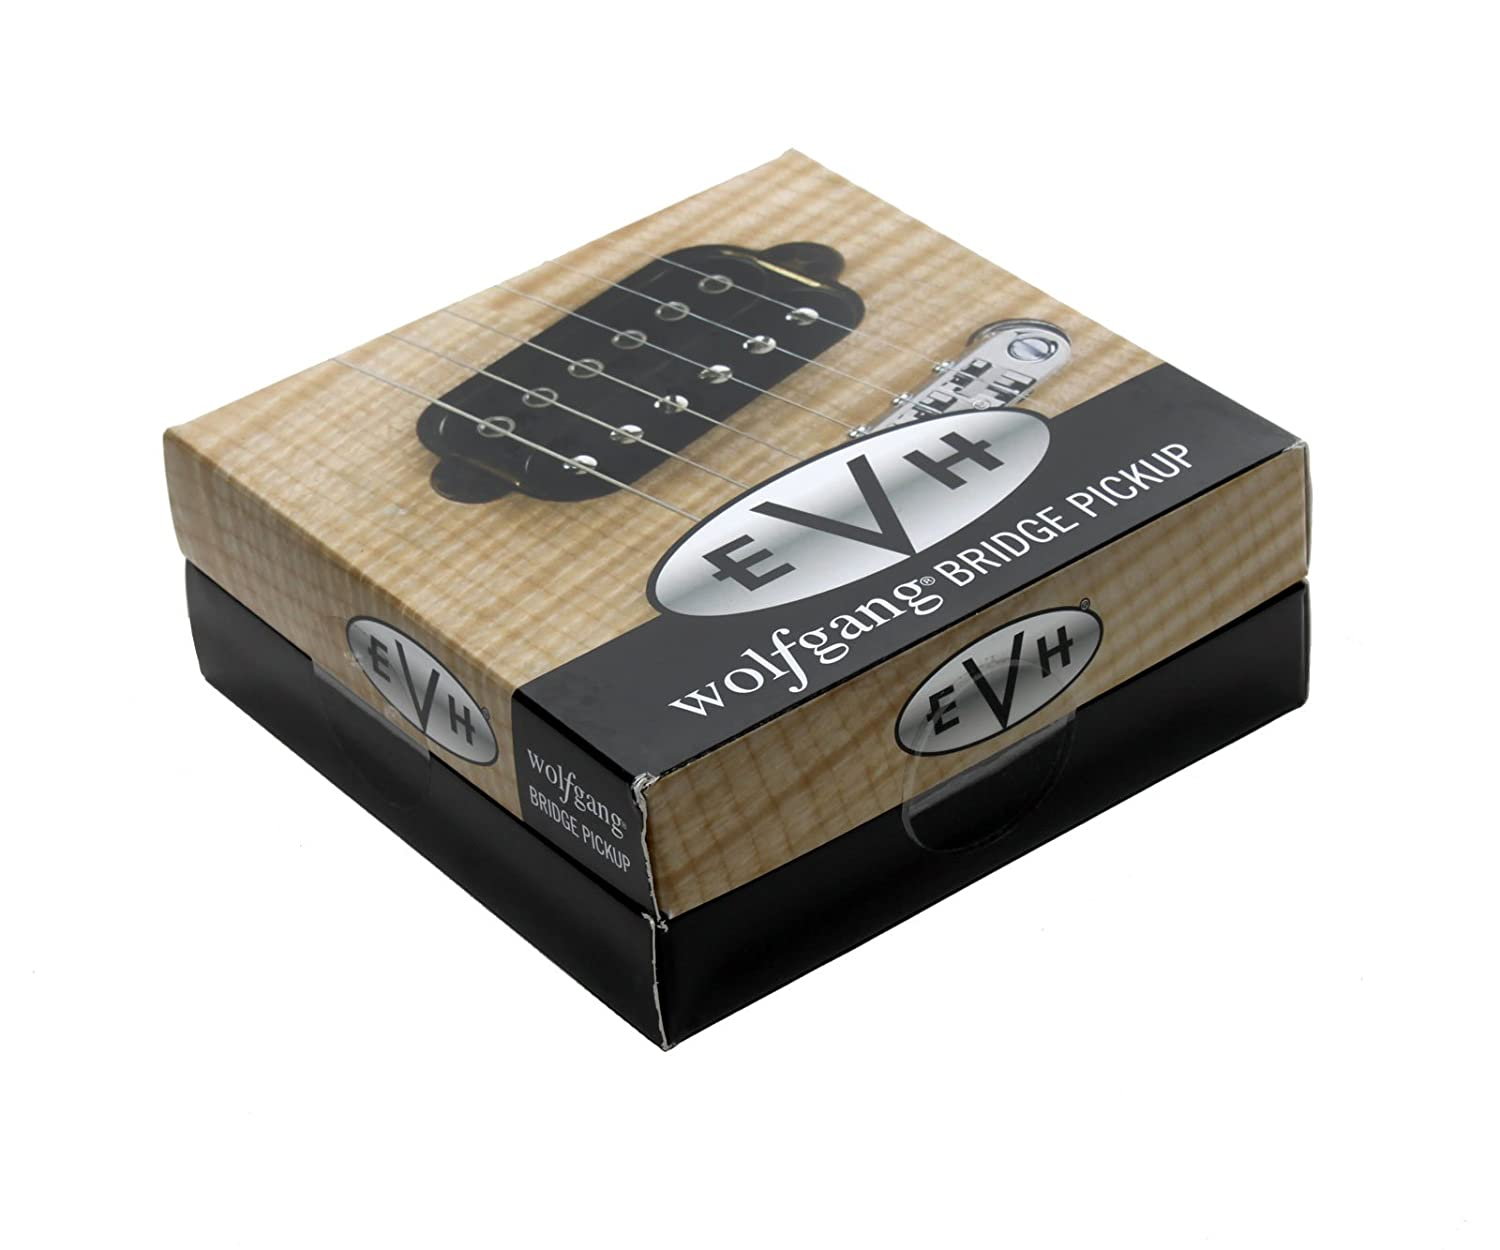 Amazon.com: Fender EVH Wolfgang Bridge Pickup - Black: Musical Instruments